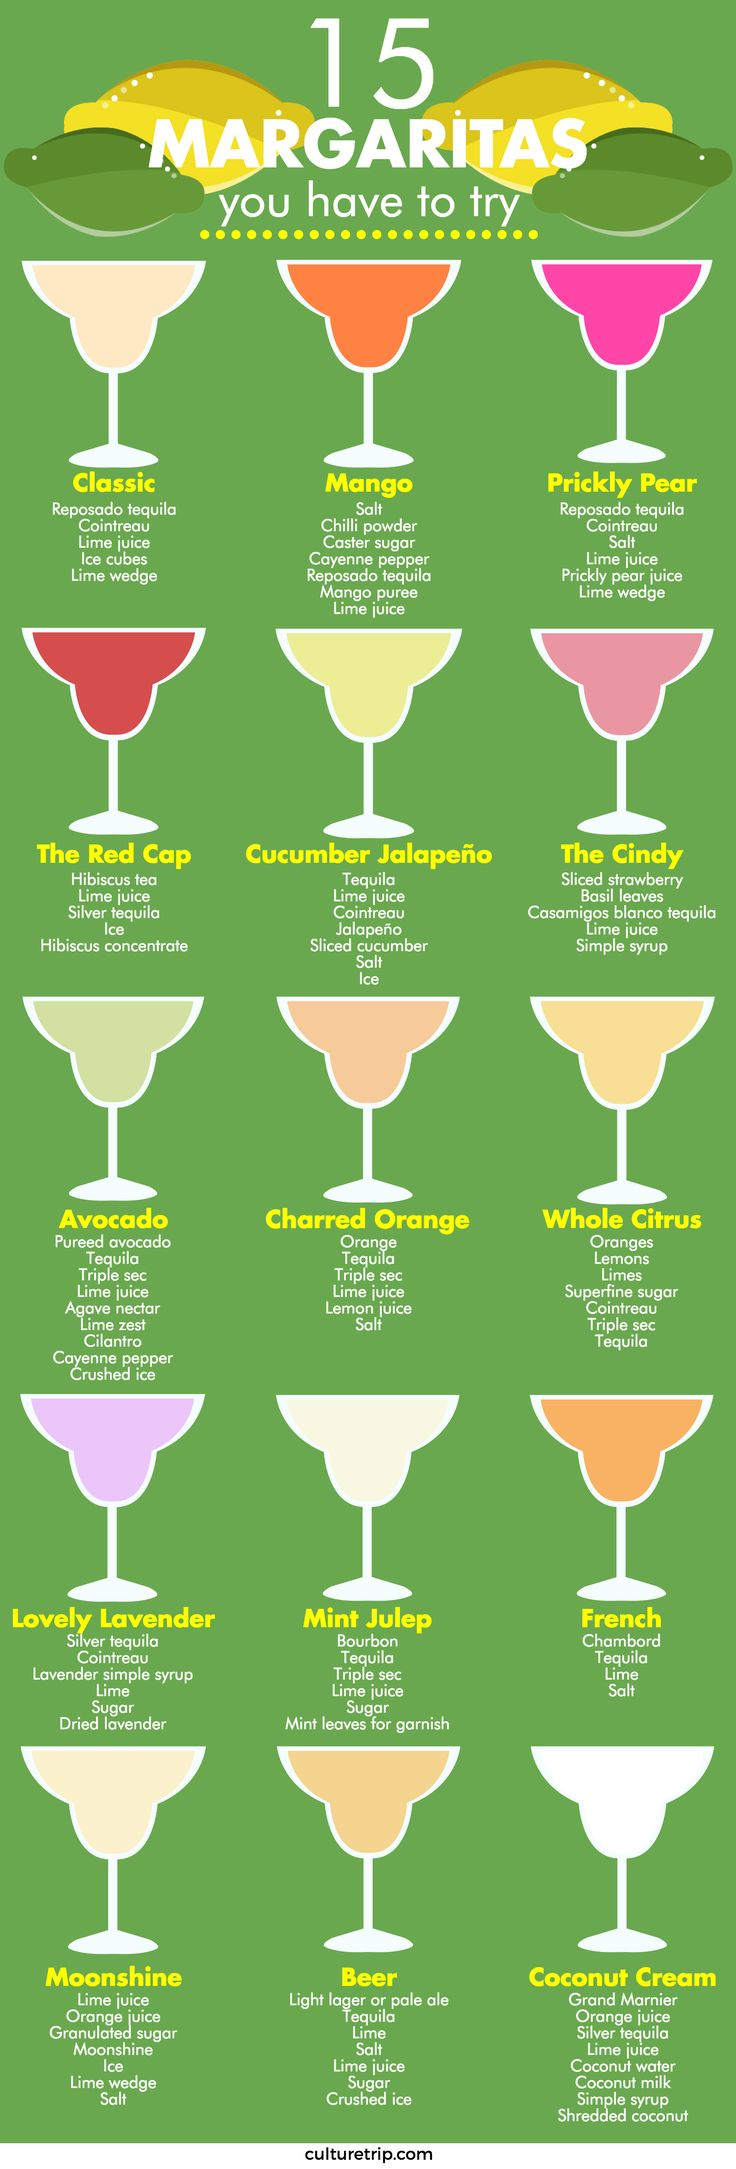 15 Margarita Recipes You Have To Try  // @thirteen02 thirteen02.com